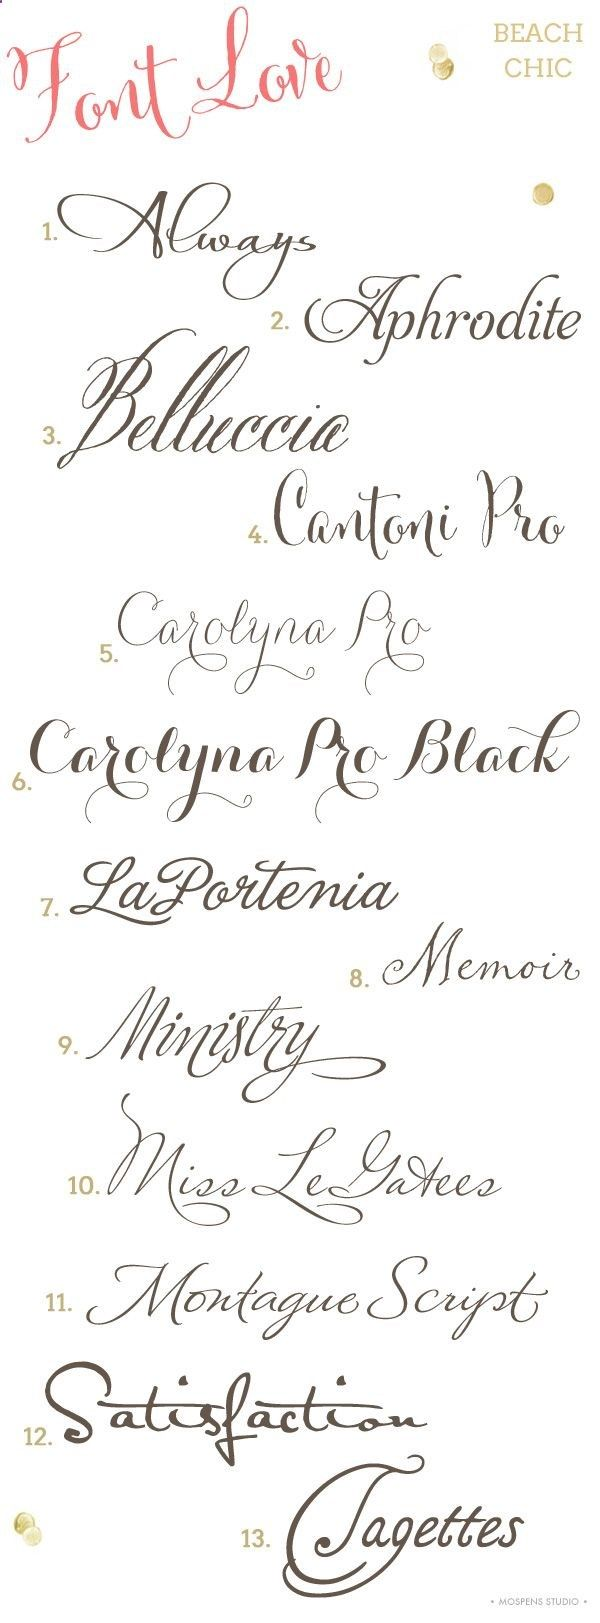 my top 16 favorite free scripty fonts   calligraphy, fancy fonts, Wedding invitations